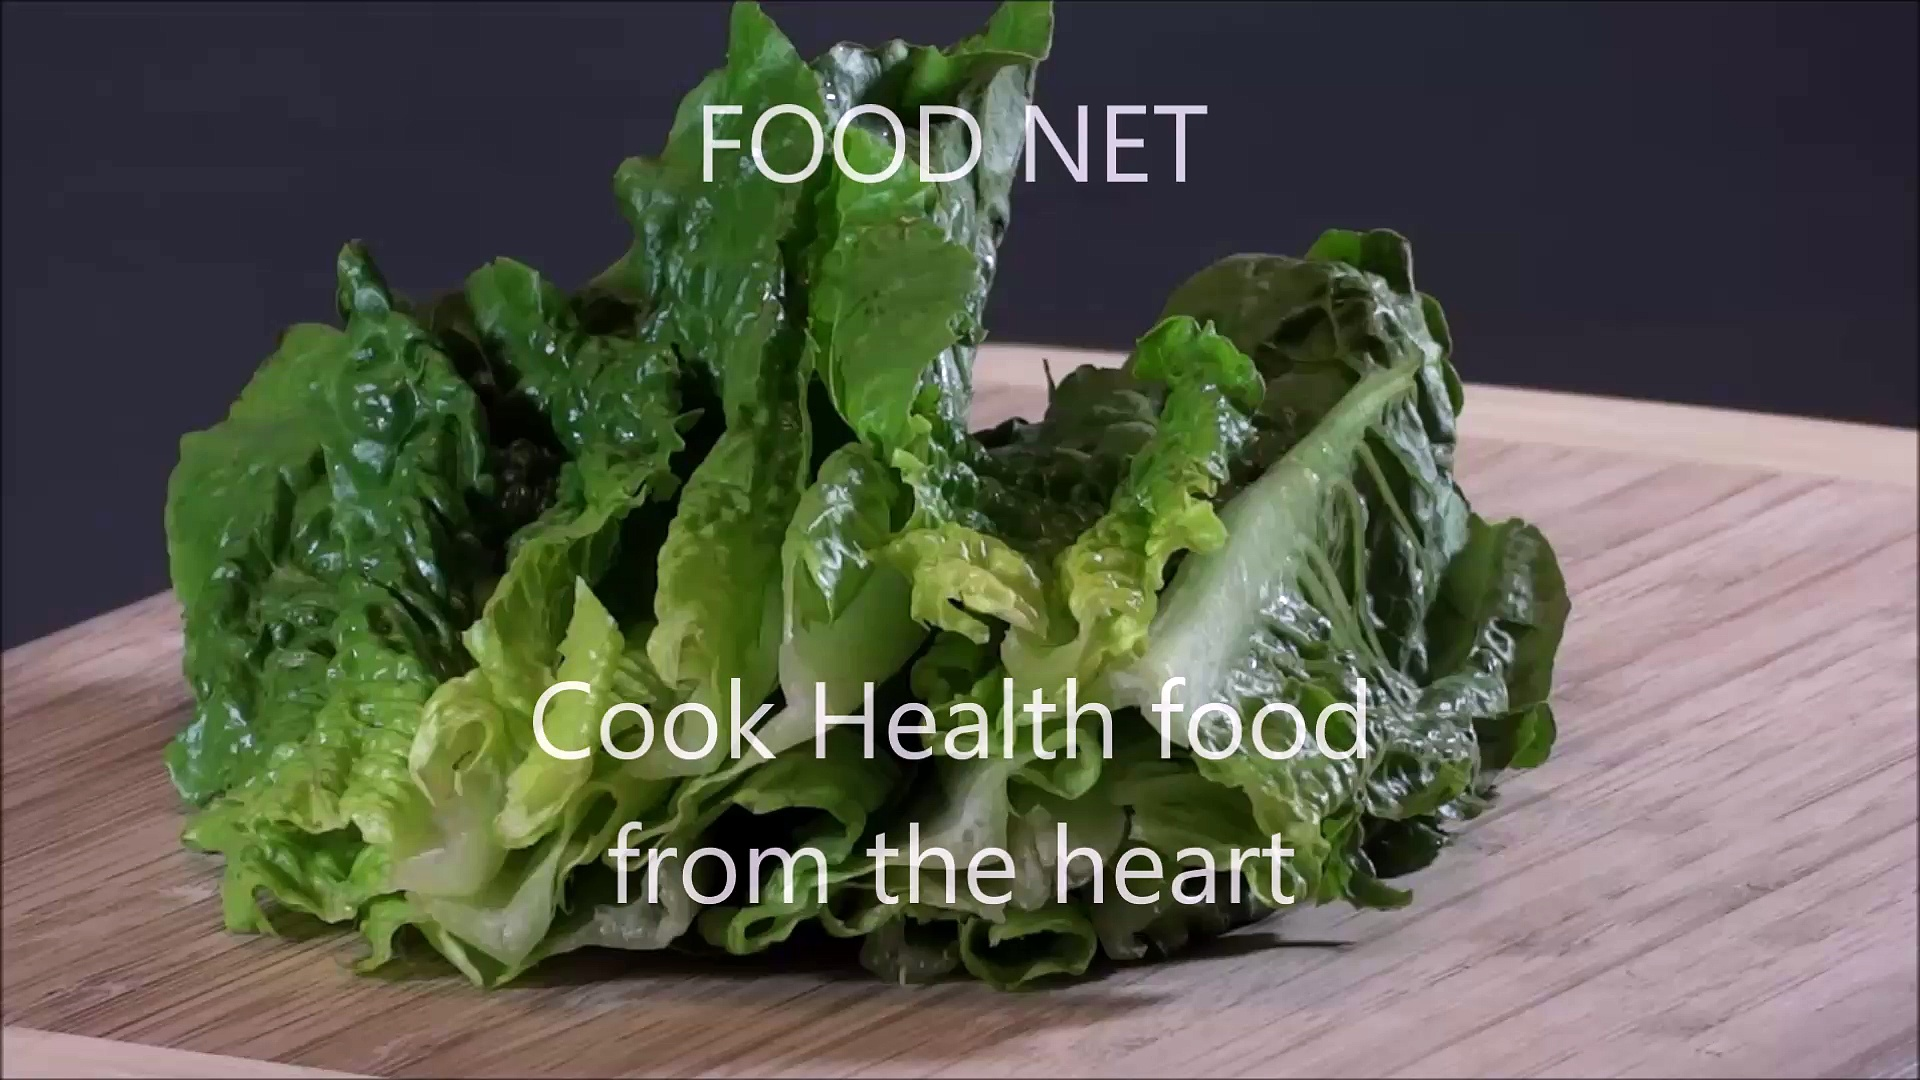 FOOD NET – Cook Health food from the heart – Cut lettuce